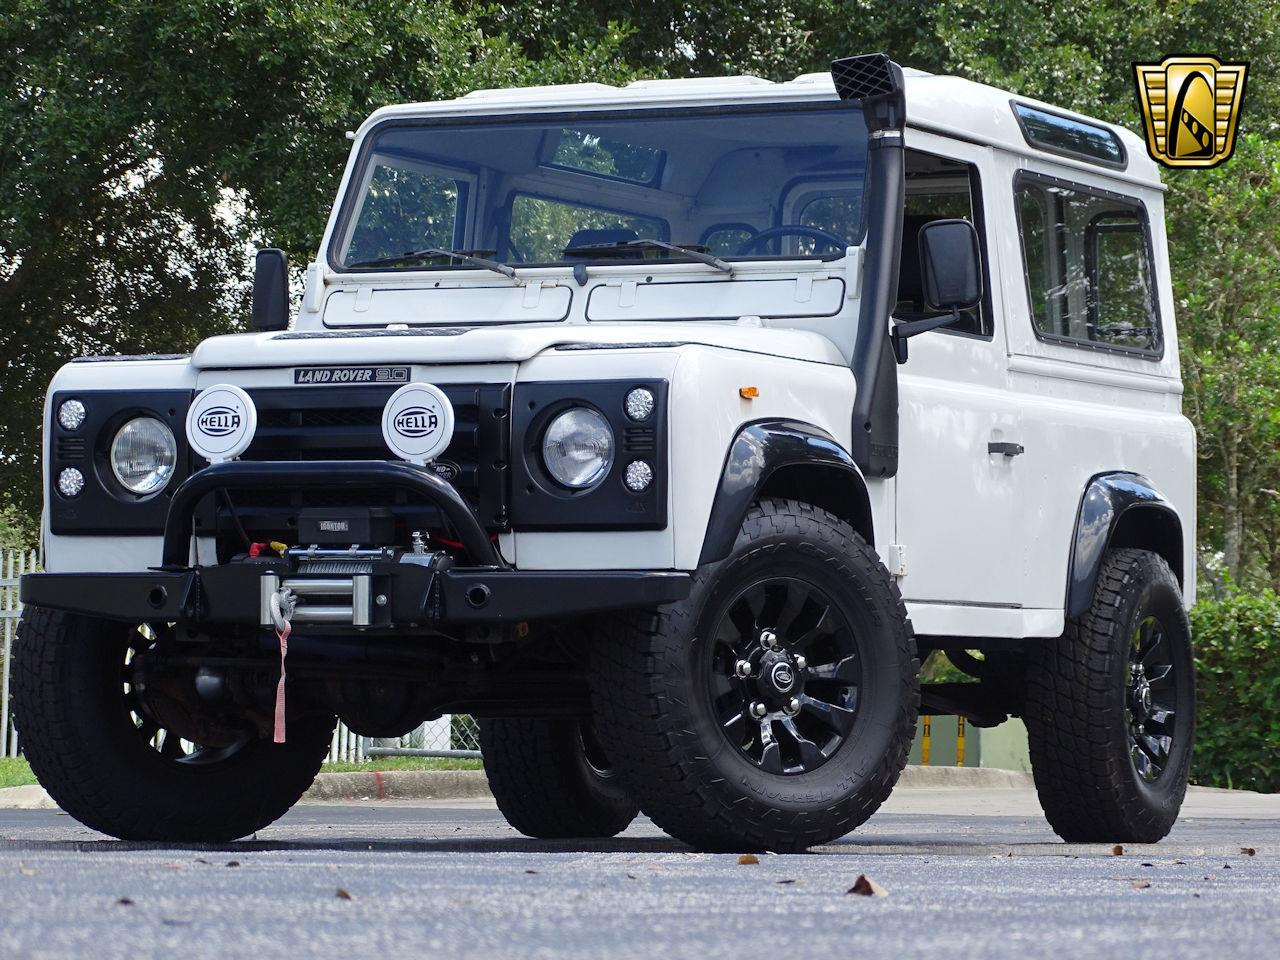 1984 Land Rover Defender (CC-1178739) for sale in San Luis Obispo, California